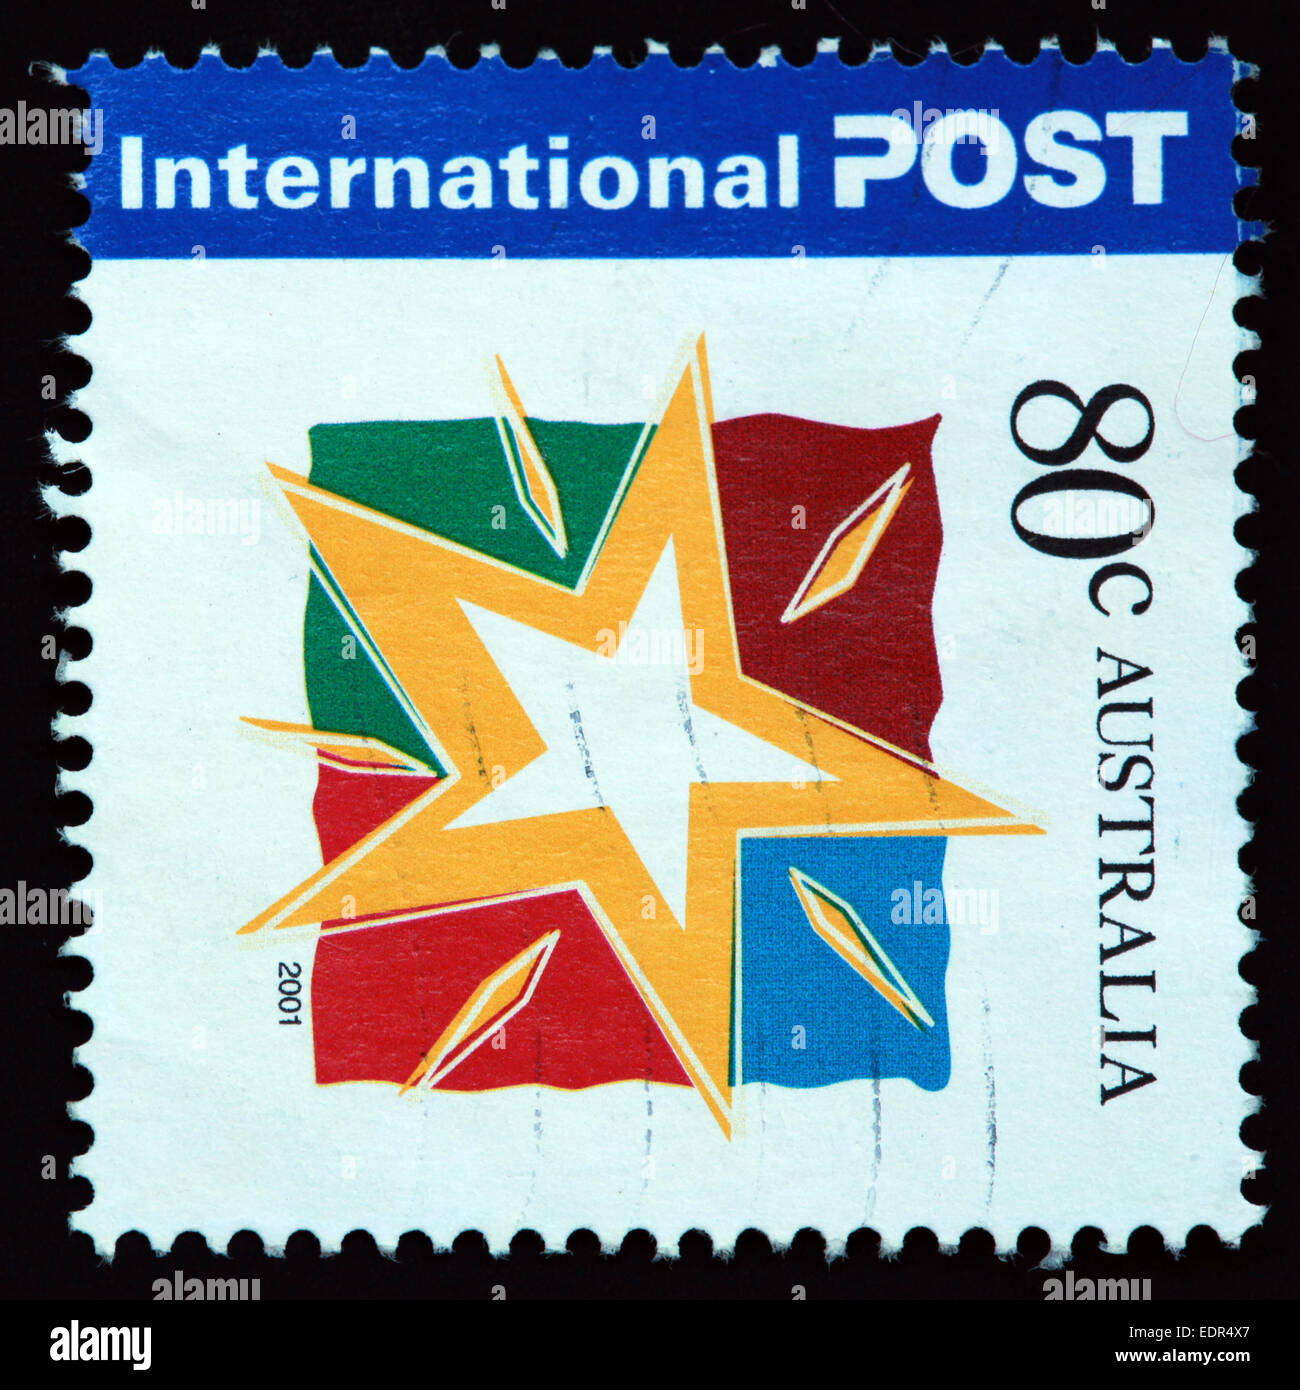 International Post,star,Used and Postmarked,Used,and,postmarked,perforated,Australia,stamp,Used,and,postmarked,Australia,Austrailian,Stamp,post,posting,mail,hobby,perforation,mark,postage,stamp,print,stamp,cancelled,stamp,payment,correspondence,postman,collection,collector,phila,Gotonysmith,post,posting,mail,hobby,perforation,mark,postage,stamp,print,stamp,cancelled,canceled,stamp,payment,correspondence,postman,collection,collector,philately,philatelist,letter,price,history,retro,Australian,Vintage,delivery,date,relationship,communication,Oz,Australia,DownUnder,classic rare unique Austrailian financial,investment,invest,value,British,empire,nation,canceled,printed on black background,close-up,closeup,close,up,sent,send,philately,mailing,shipping,postoffice,office,isolated,circa,special,colour,color,postmarked,marked,airmail,aged,antique,retro,cutting,historic,old,stamps,collection,stamp collection,album,Timbre,Sello,Stempel,Selo,Down Under,Black background